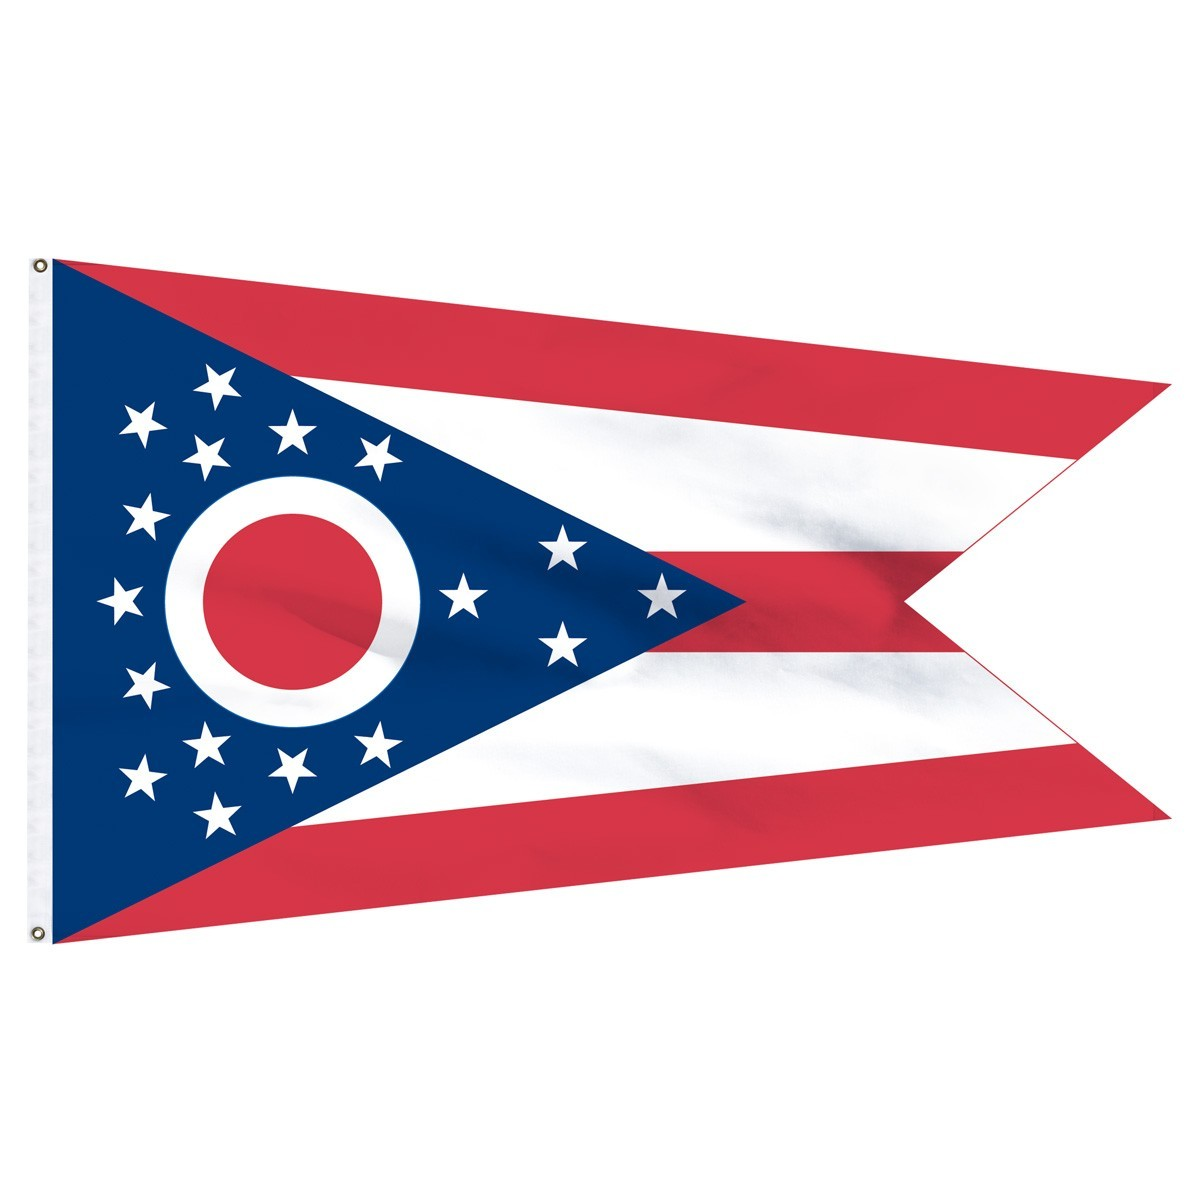 Ohio polyester nylon classroom flags for sale